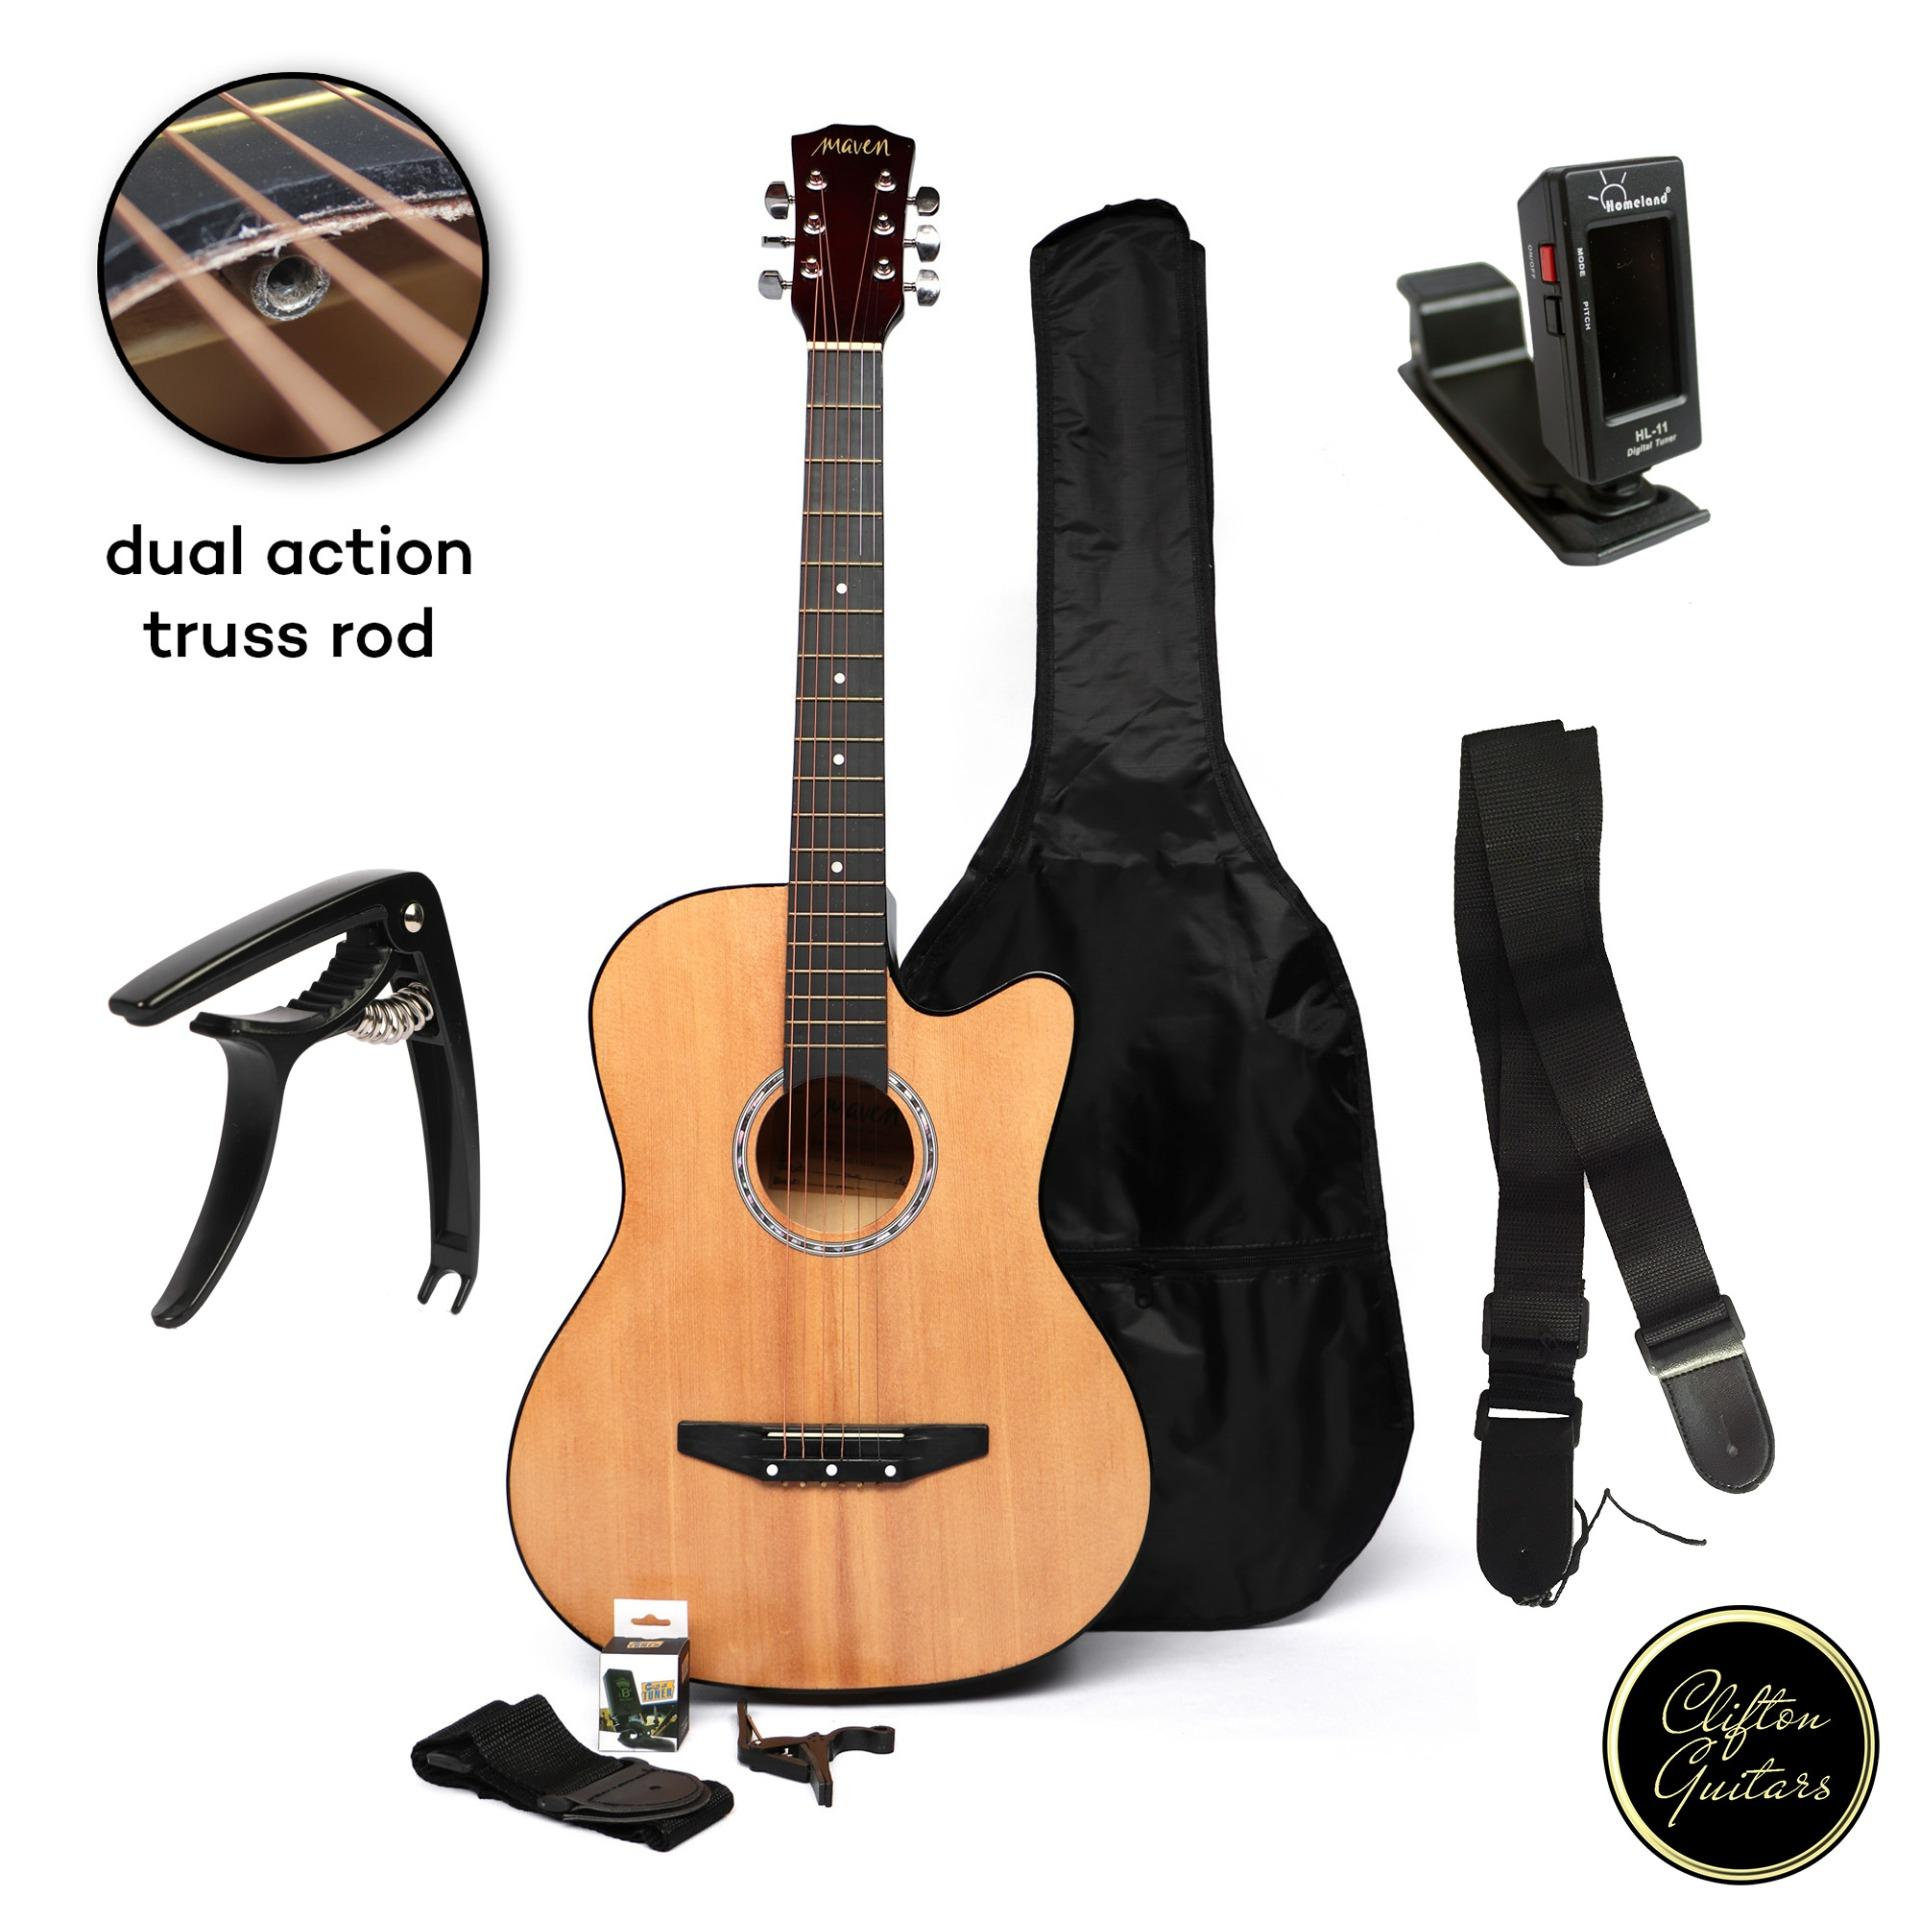 Guitar for sale - Guitar Instruments best seller, prices & brands in